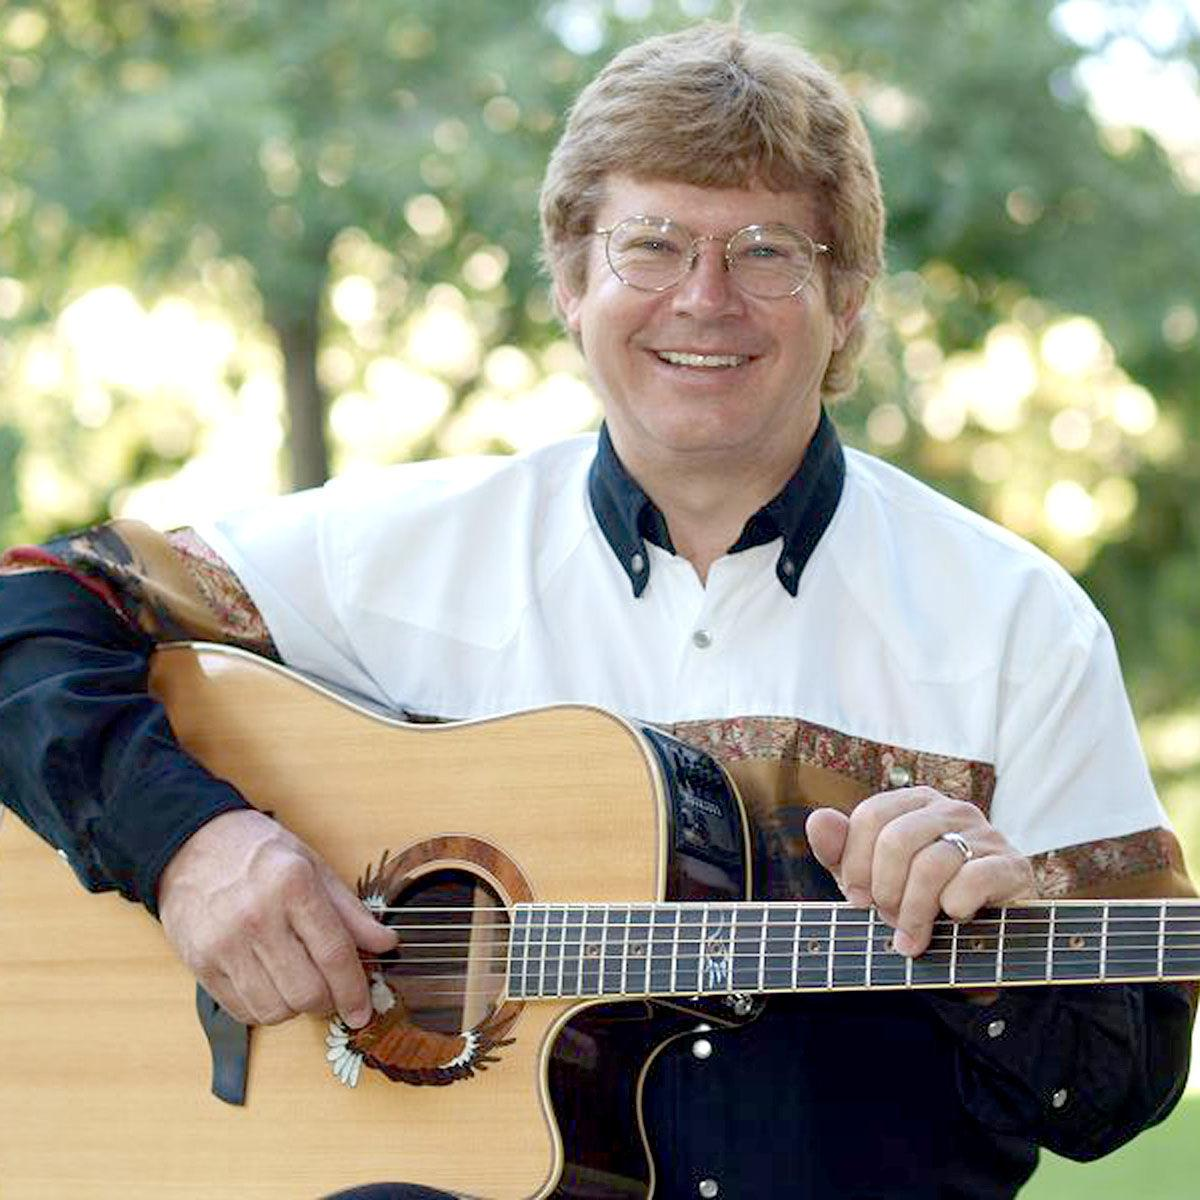 Fmes Concert To Pay Tribute To John Denver Music